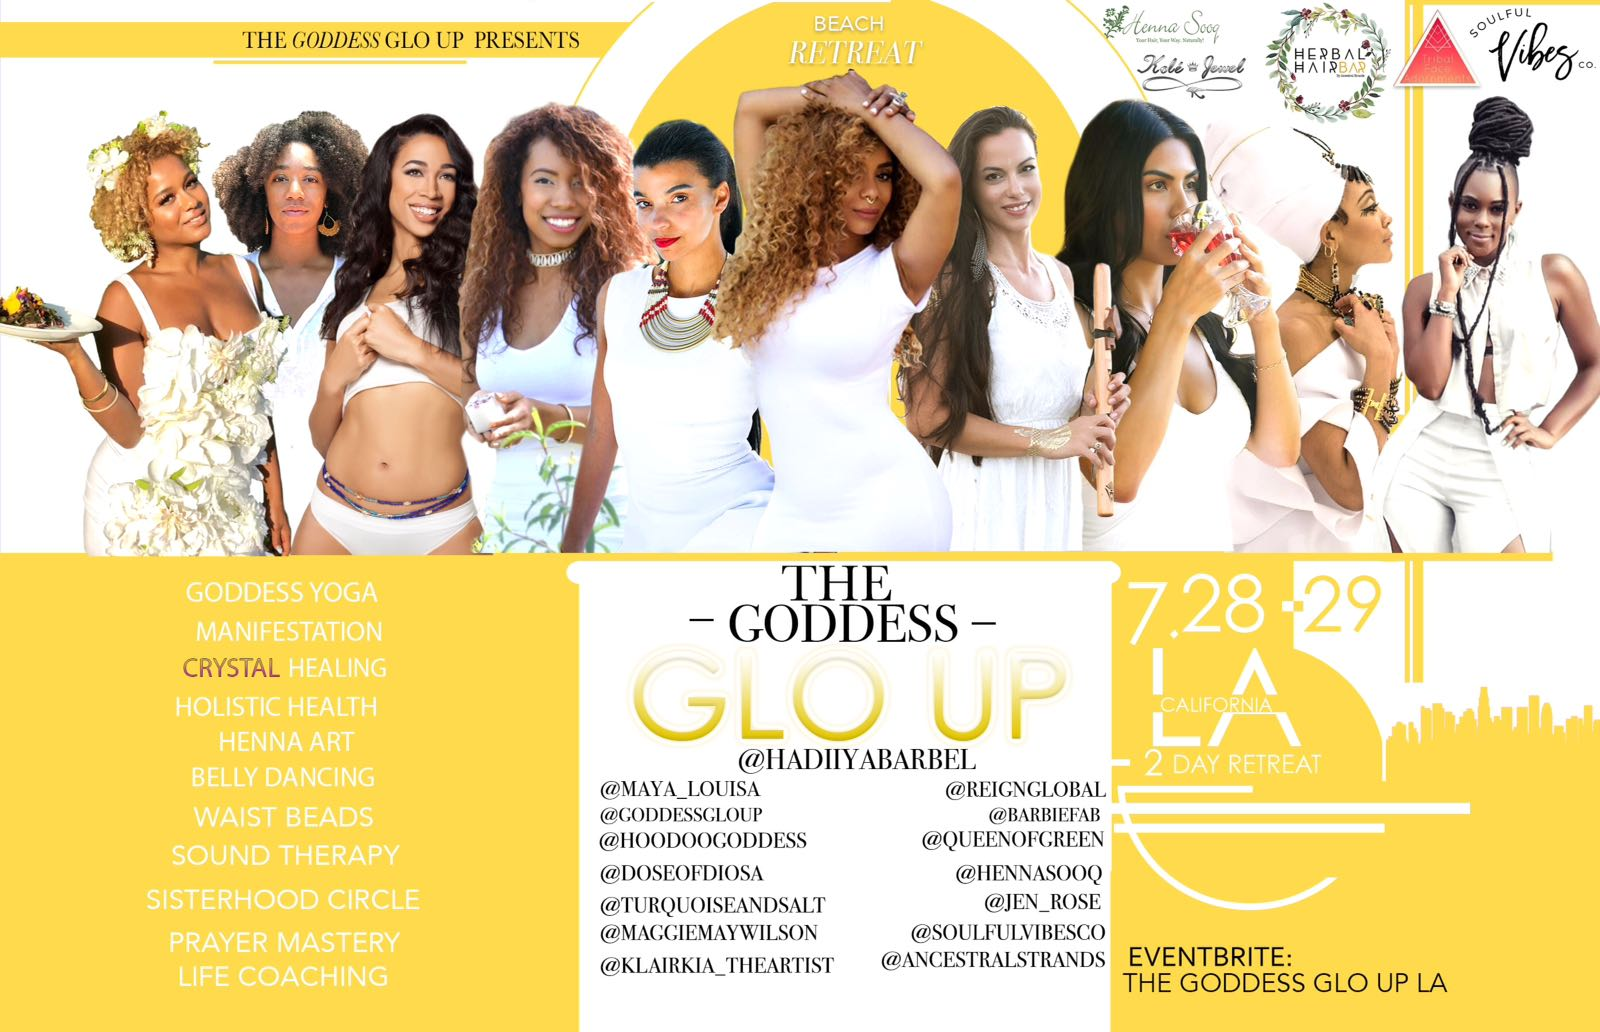 THE GODDESS GLO UP - Full Moon Weekend Goddess Retreat with East & West Coast QueensLos Angeles, July 28 & 29